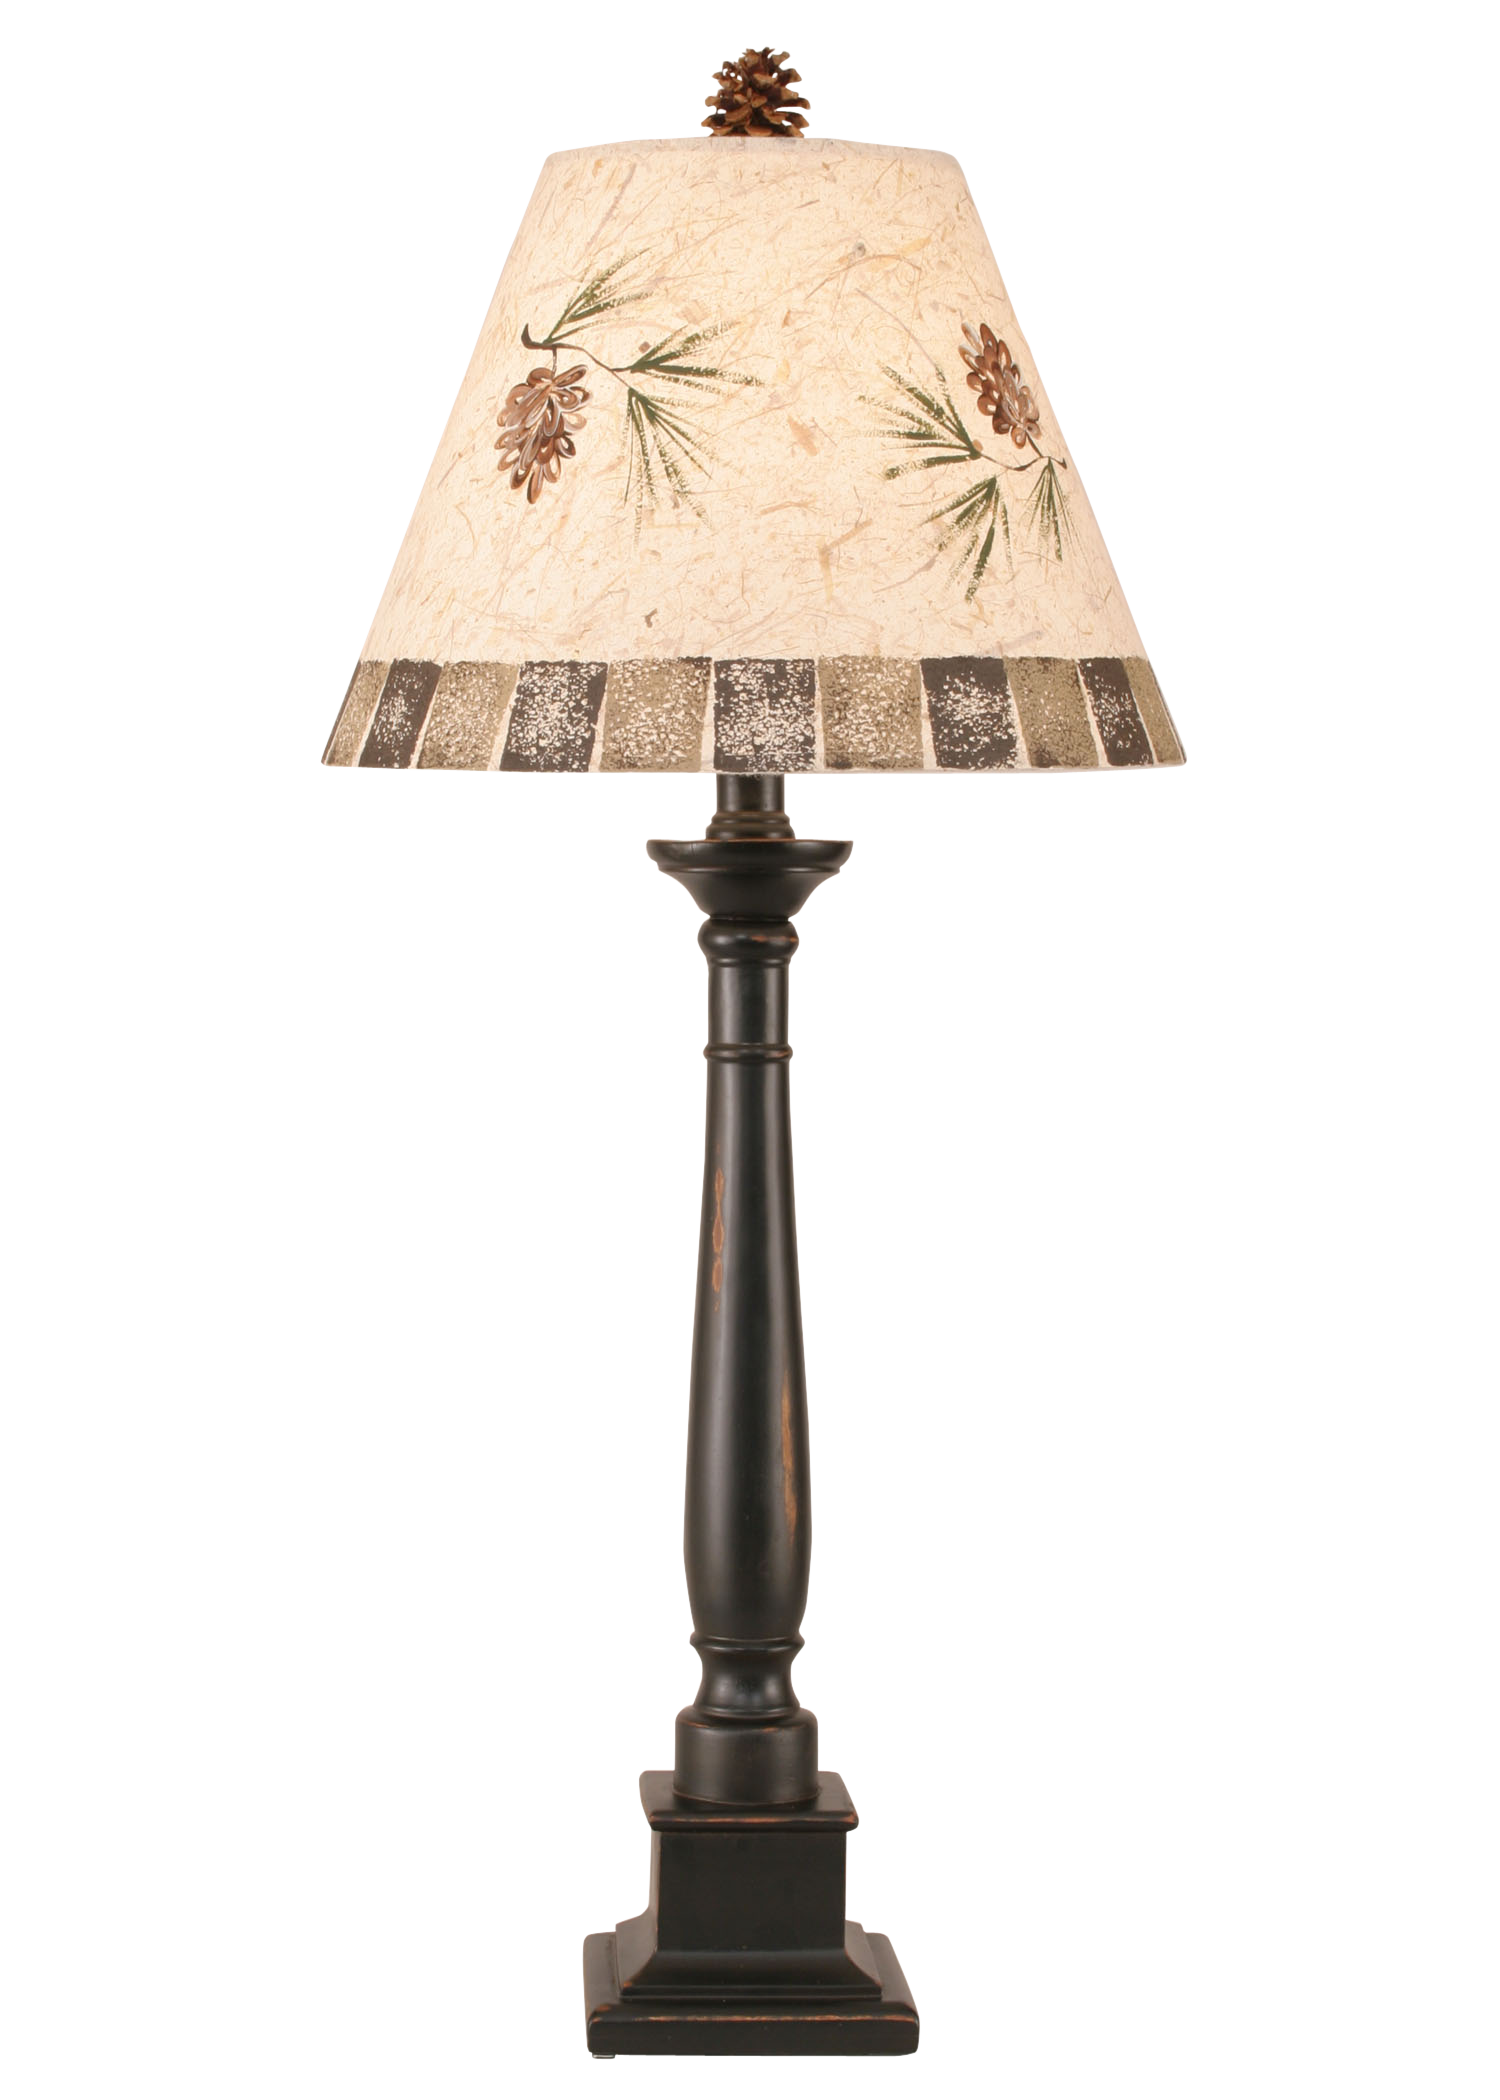 Distressed Black Square Candlestick Table Lamp w/ Pine Cone Shade - Coast Lamp Shop